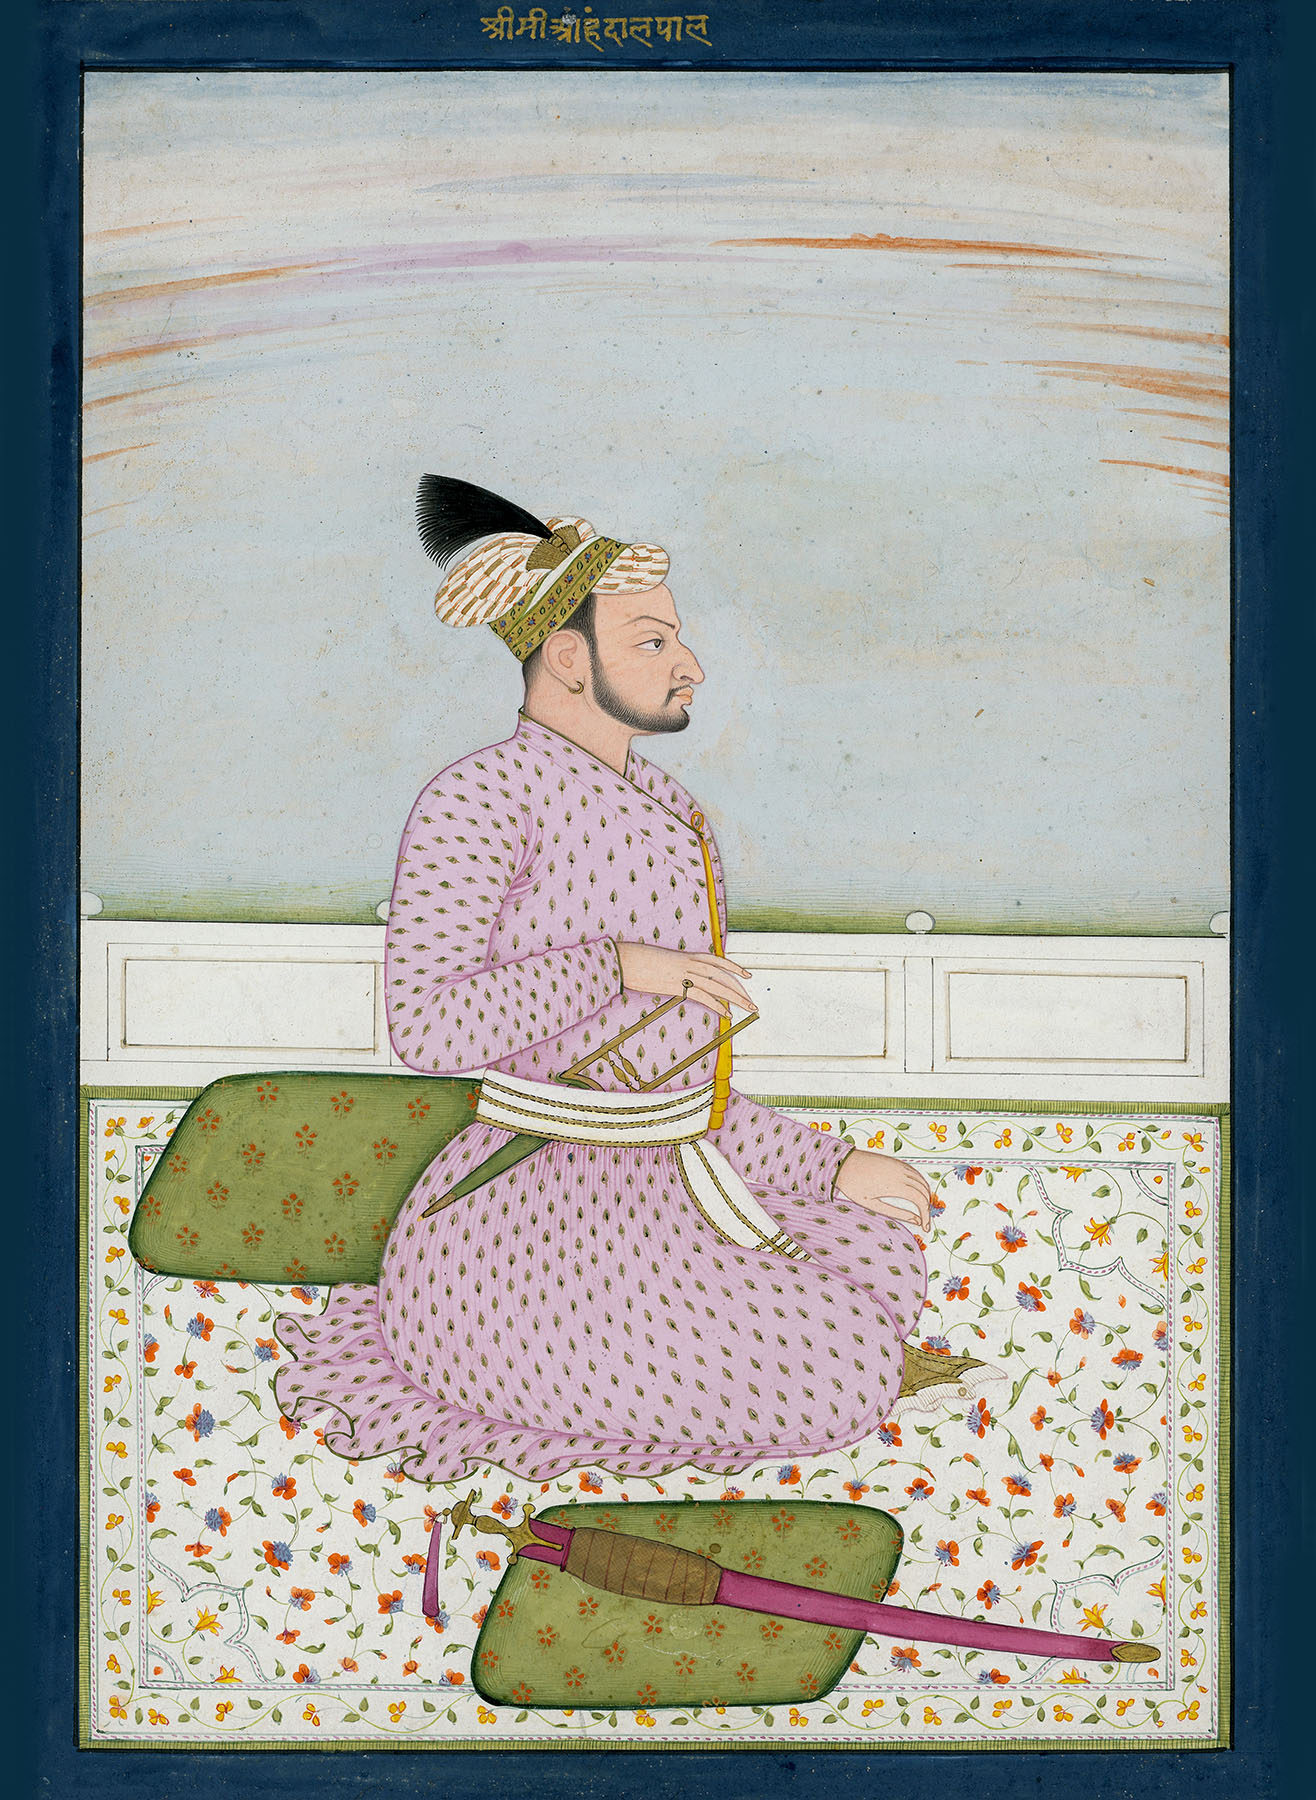 KAPOOR GALLERIES A portrait of Mian Hadala Pal (1673- 1678) Attributed to Nainsukh at Basohli, circa 1763-1775 Opaque watercolor heightened with gold on paper; inscribed in Devanagari with gold Ink Image: 7 3/16 x 4 7/8 in. (18.3 x 12.4 cm.) Folio: 10 1/4 x 7 5/8 in. (26 x 19.4 cm.)